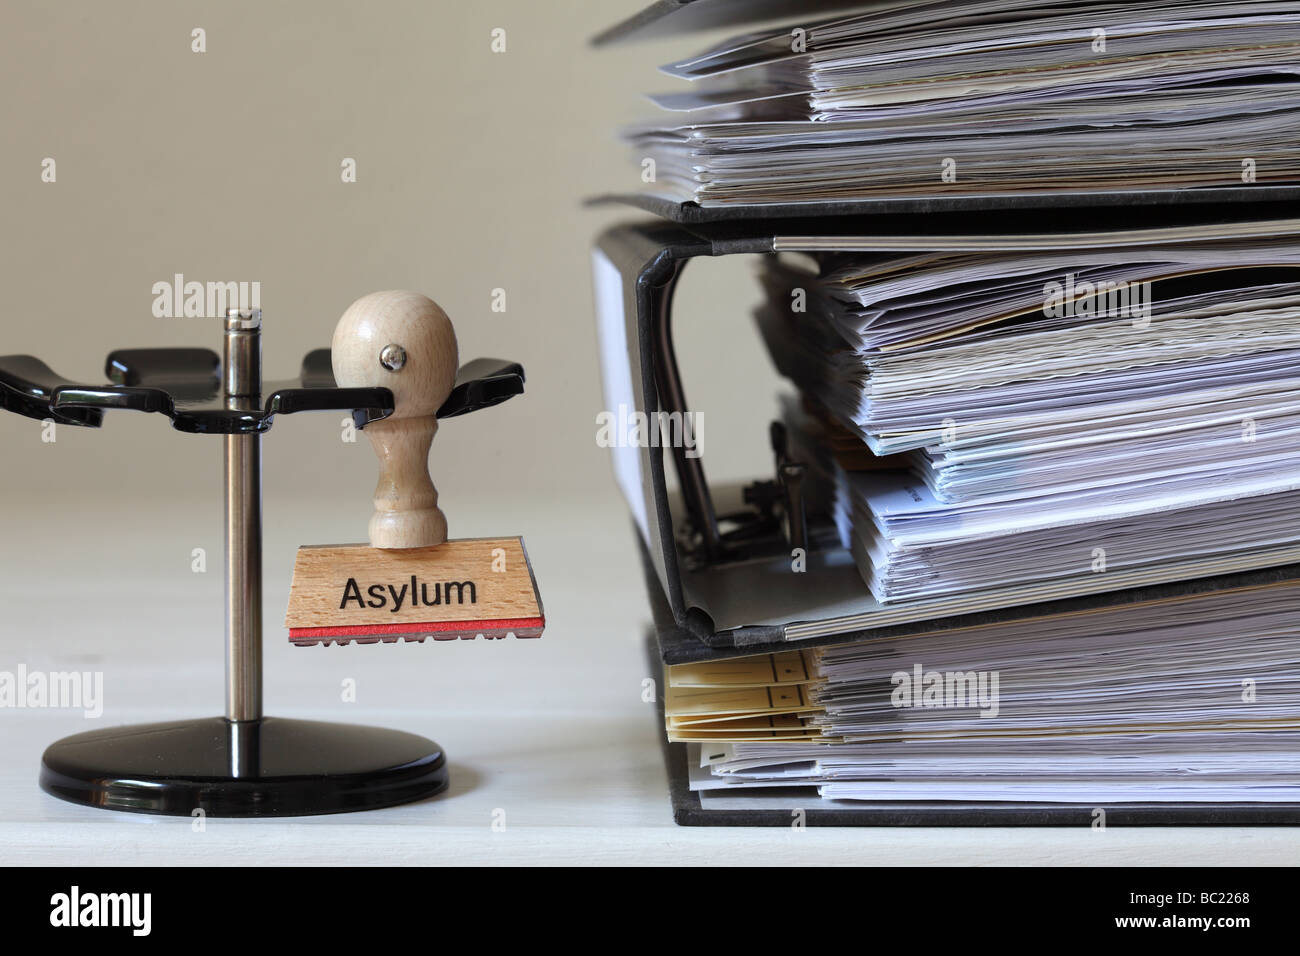 Stamp with inscription Asylum next to a pile of files - Stock Image